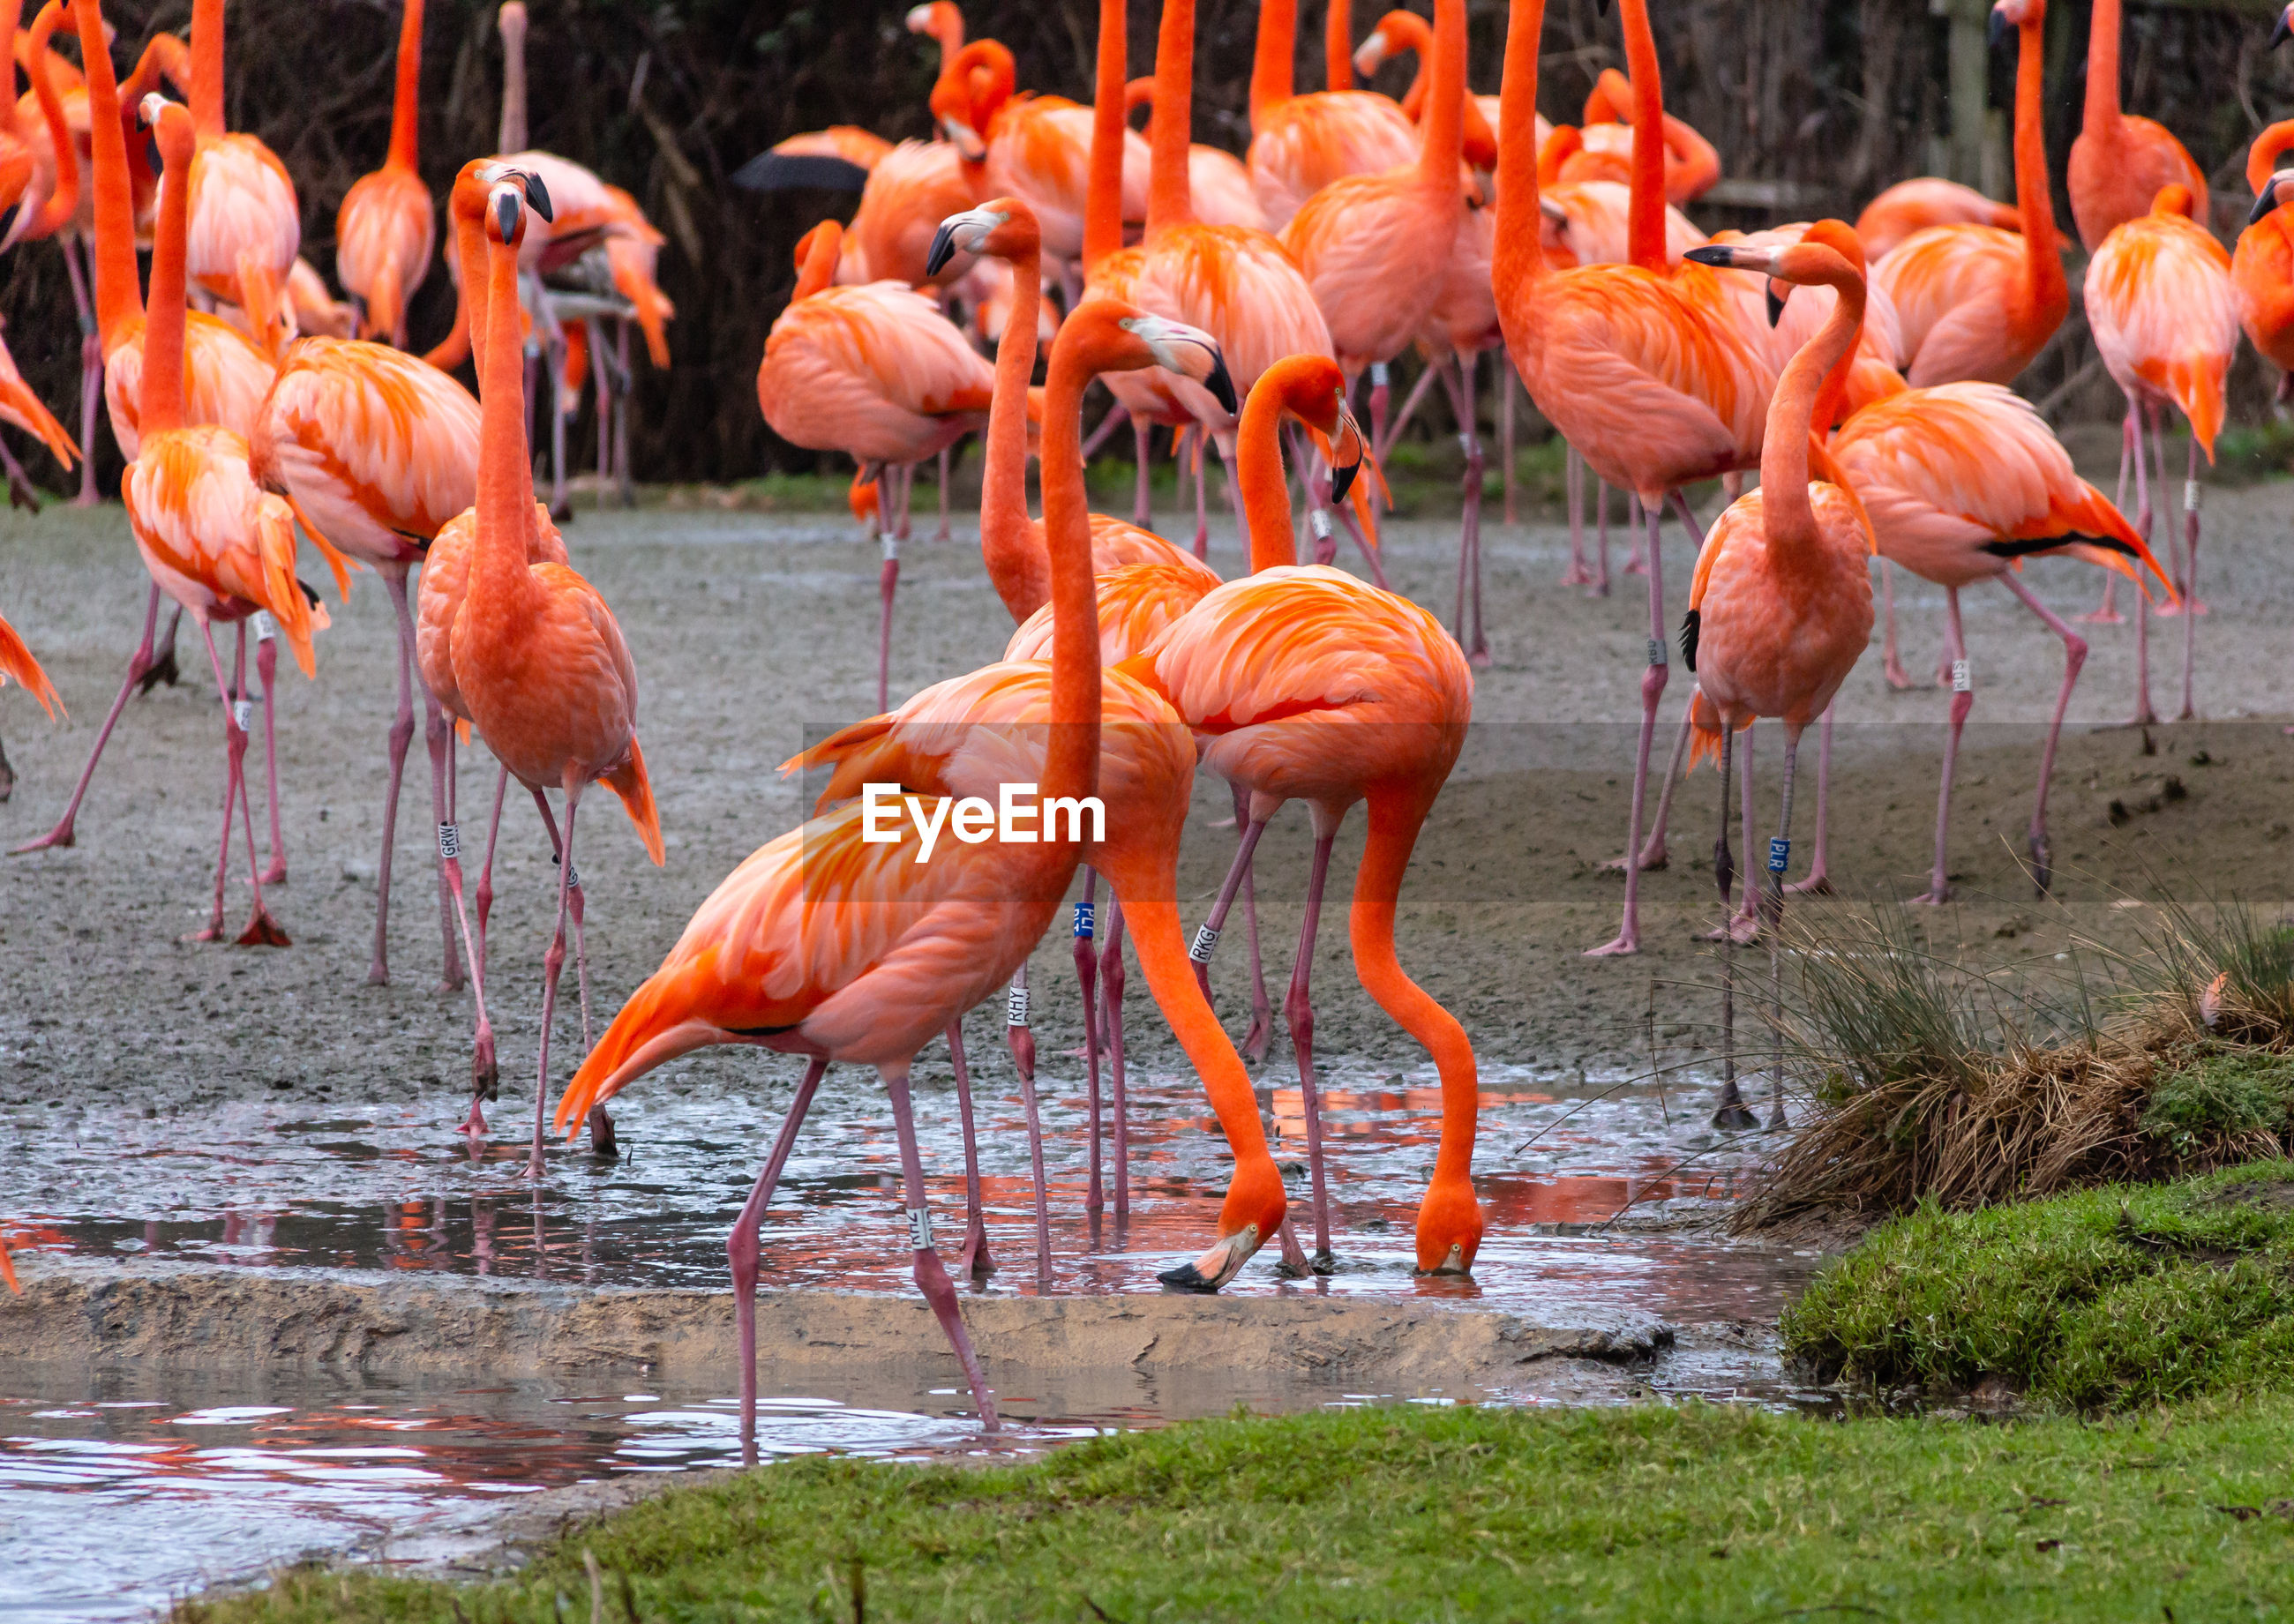 bird, flamingo, animals in the wild, animal themes, animal, group of animals, water, animal wildlife, vertebrate, orange color, large group of animals, pink color, lake, no people, day, nature, beauty in nature, outdoors, wading, flock of birds, mud, animal neck, freshwater bird